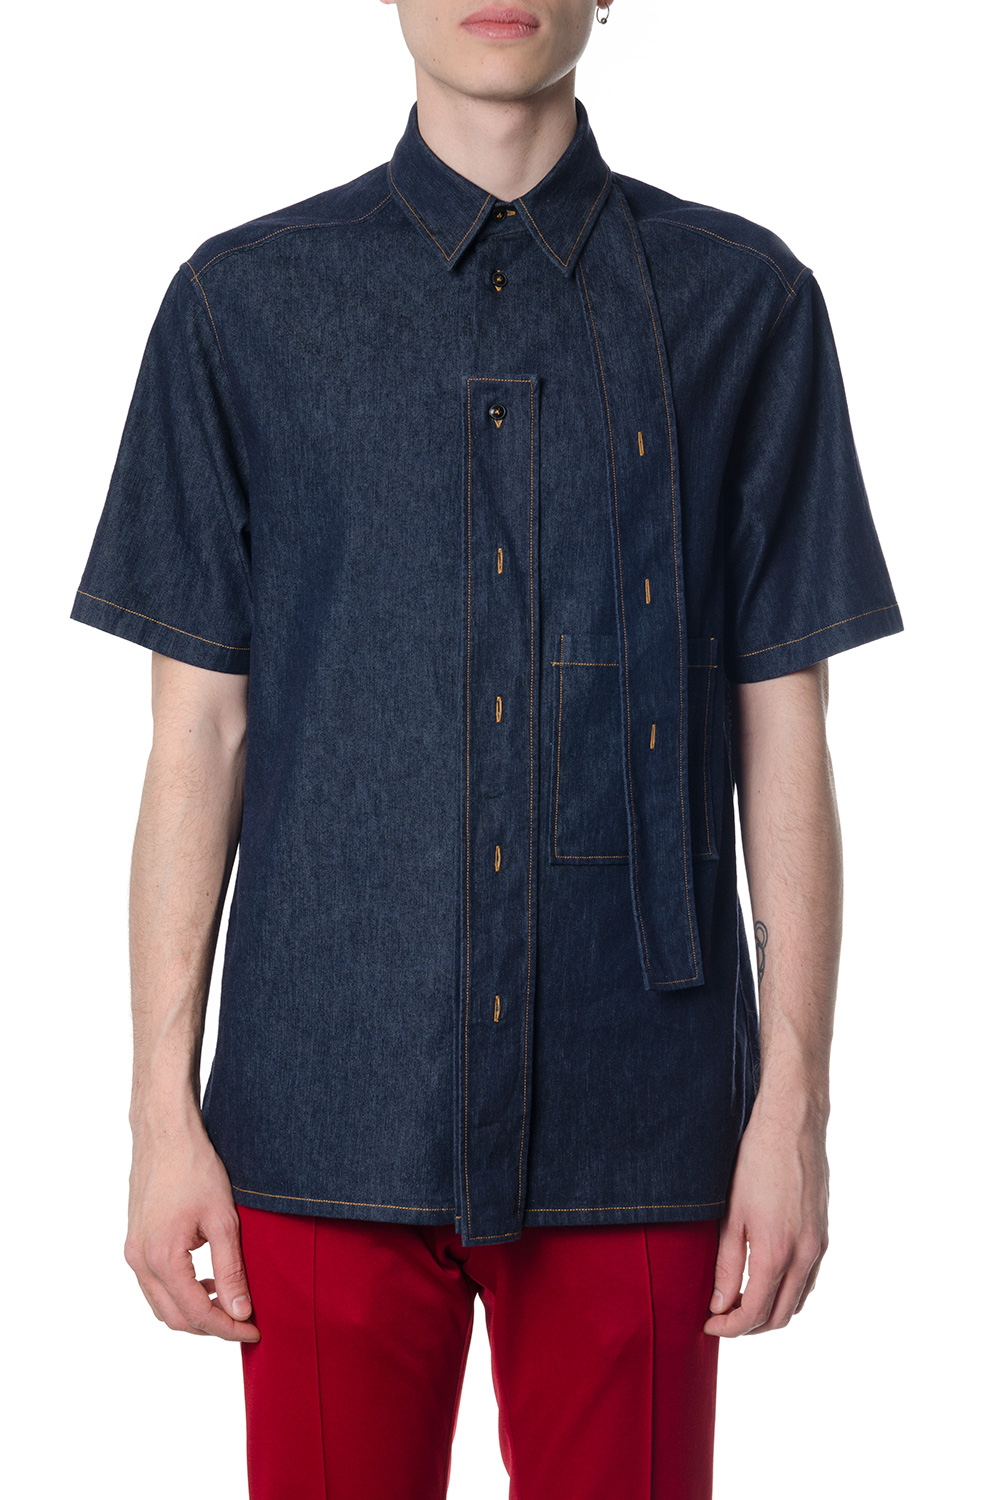 320327bc69da BLUE DENIM SHORT SLEEVES SHIRT SS 2018 - VALENTINO - Boutique Galiano